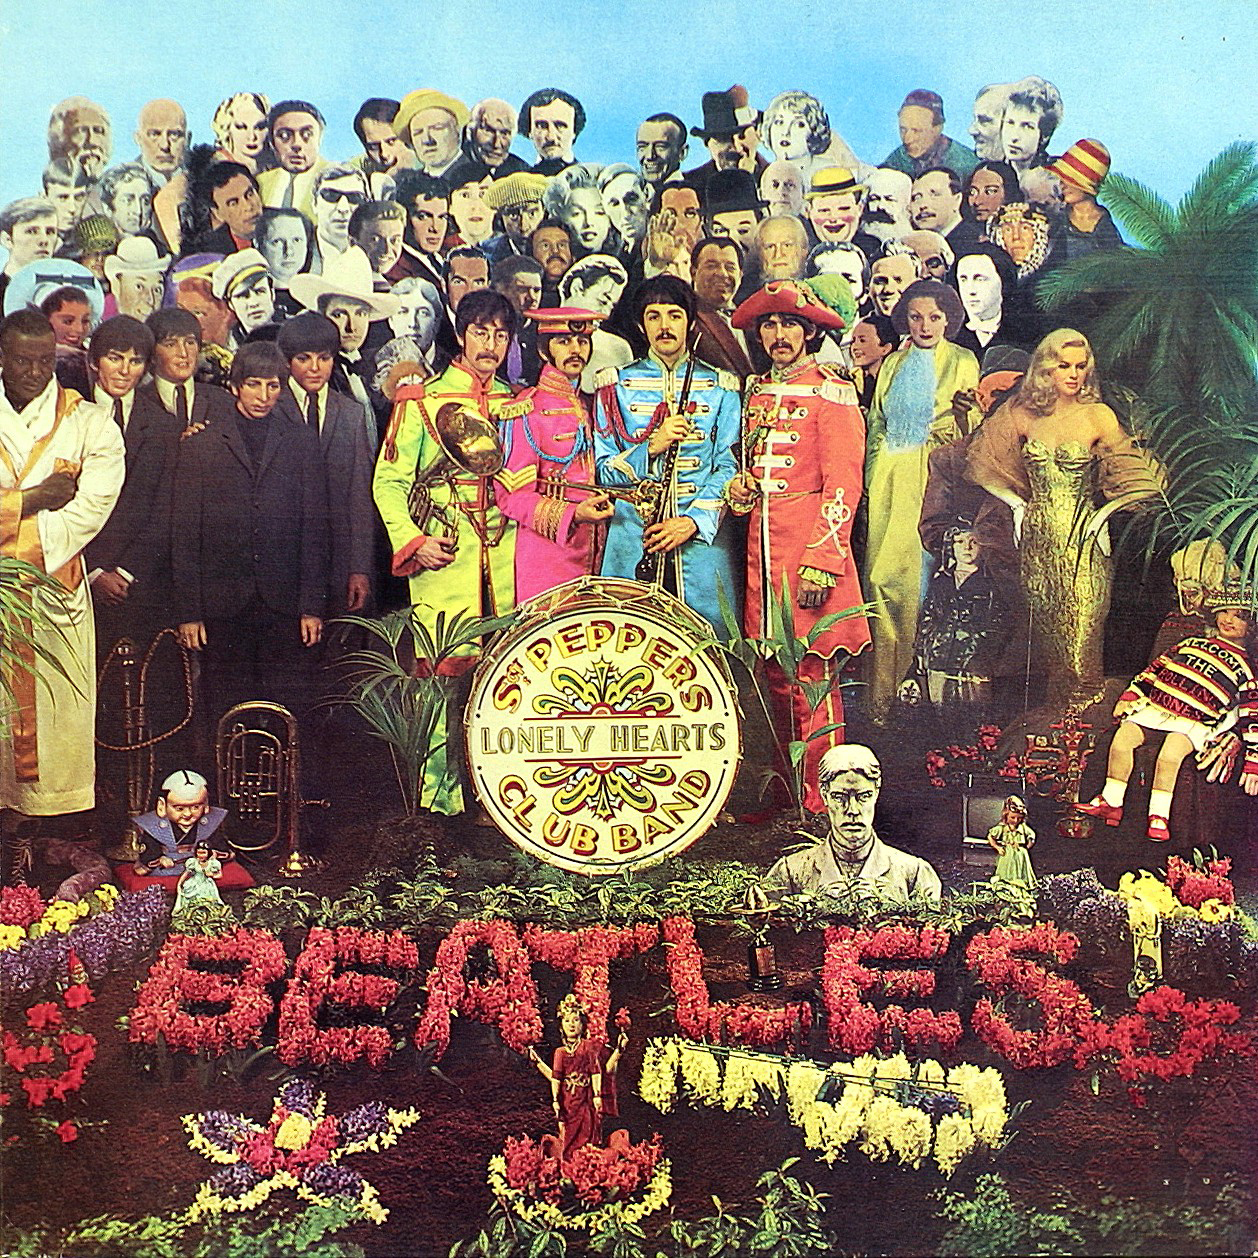 Album sleeve for Sgt. Peppers Lonely Hearts Club Band by The Beatles, Peter Blake and Jann Haworth